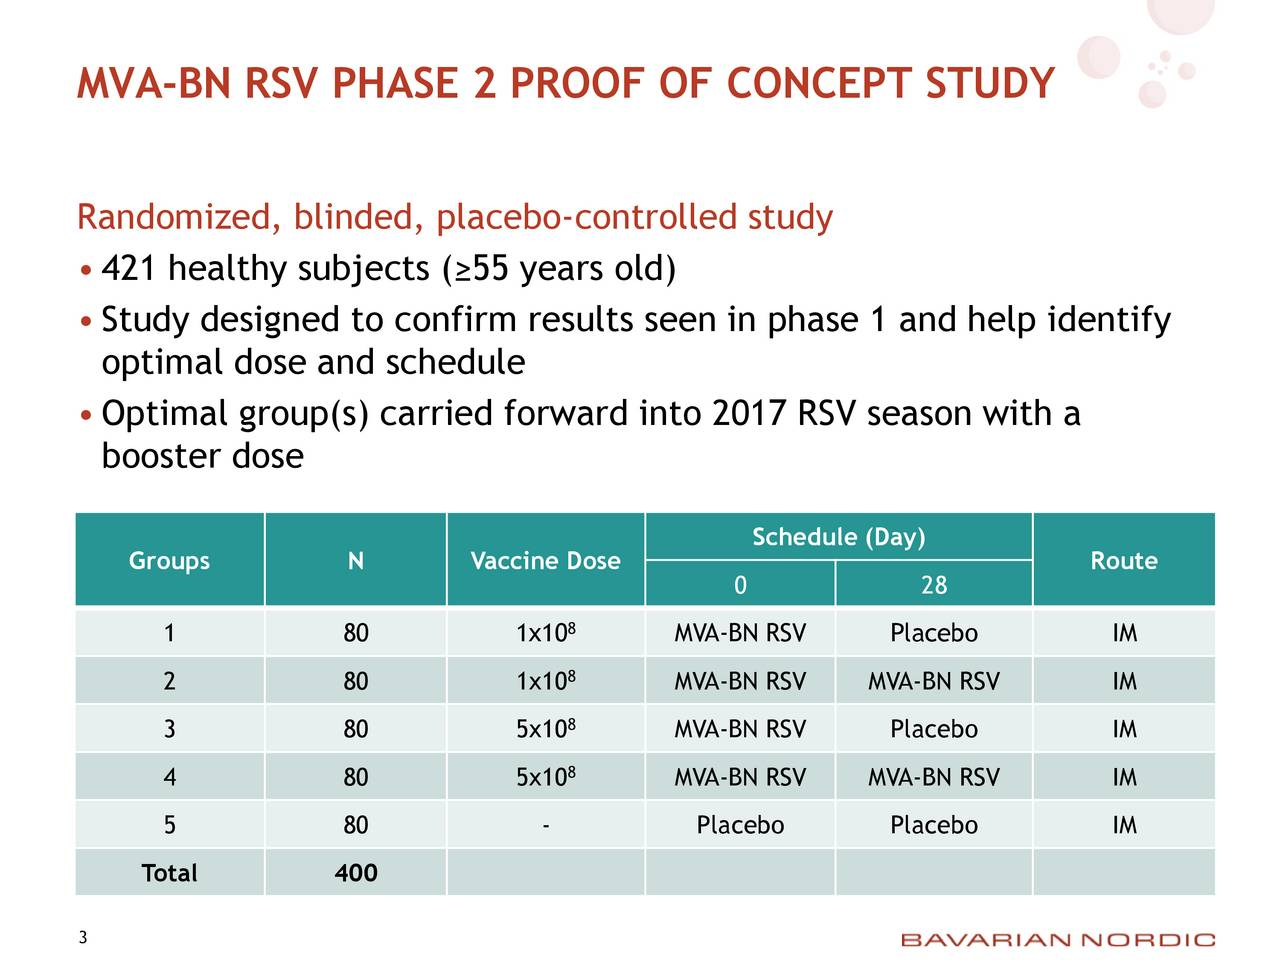 Randomized, blinded, placebo-controlled study 421 healthy subjects (55 years old) Study designed to confirm results seen in phase 1 and help identify optimal dose and schedule Optimal group(s) carried forward into 2017 RSV season with a booster dose Schedule (Day) Groups N Vaccine Dose Route 0 28 8 1 80 1x10 MVA-BN RSV Placebo IM 8 2 80 1x10 MVA-BN RSV MVA-BN RSV IM 3 80 5x108 MVA-BN RSV Placebo IM 4 80 5x108 MVA-BN RSV MVA-BN RSV IM 5 80 - Placebo Placebo IM Total 400 3